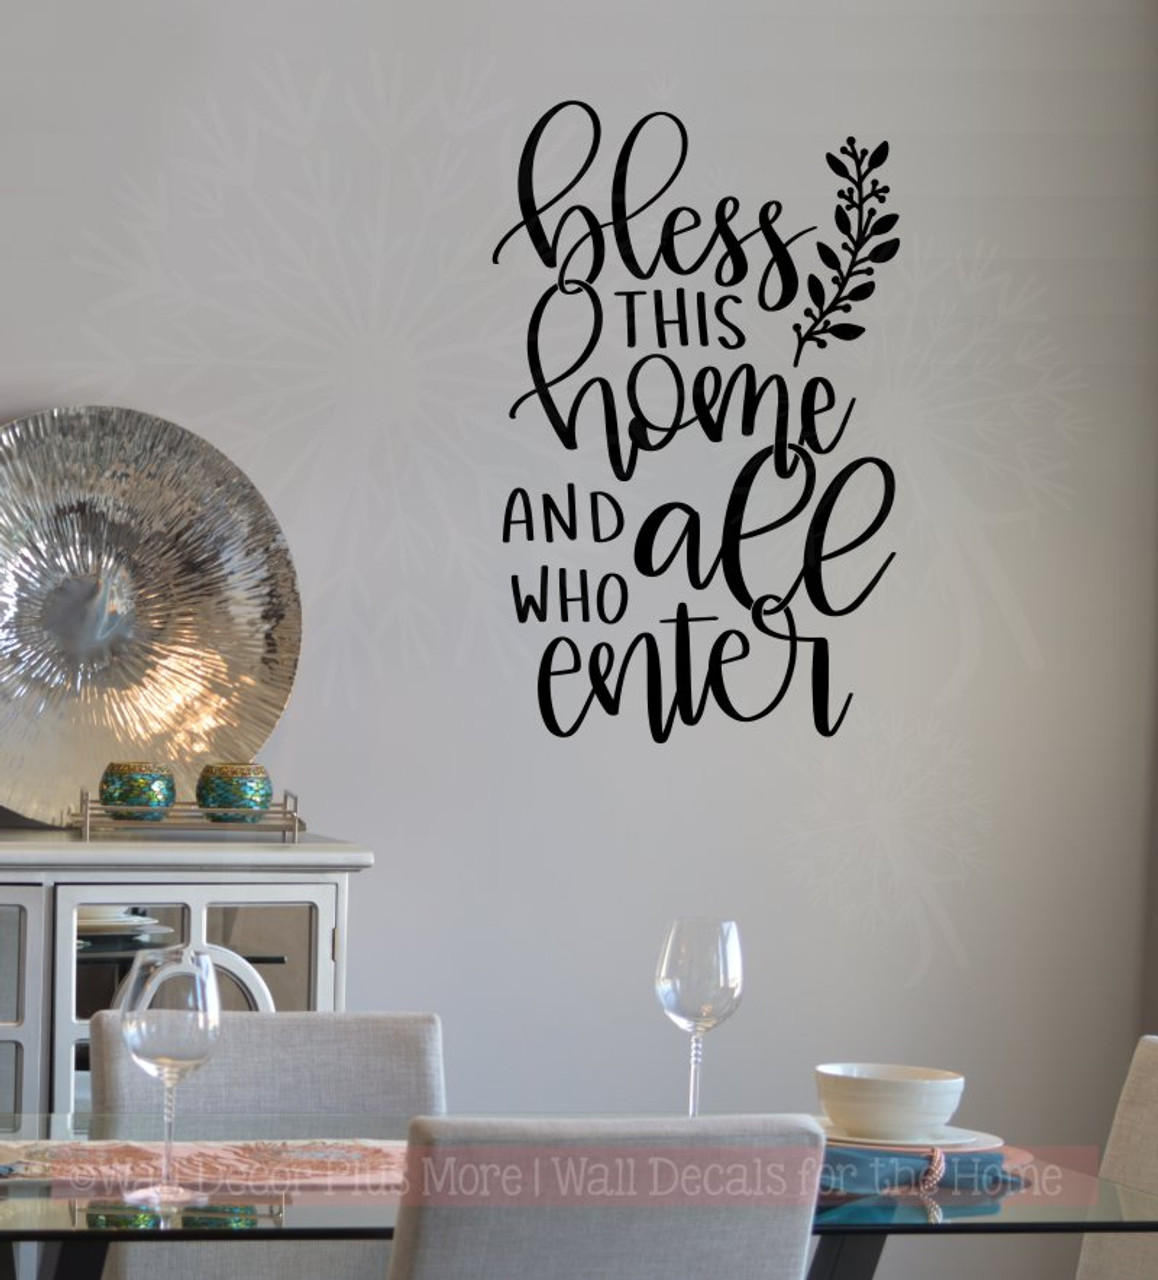 bless this home all who enter entry vinyl letters decals kitchen wall